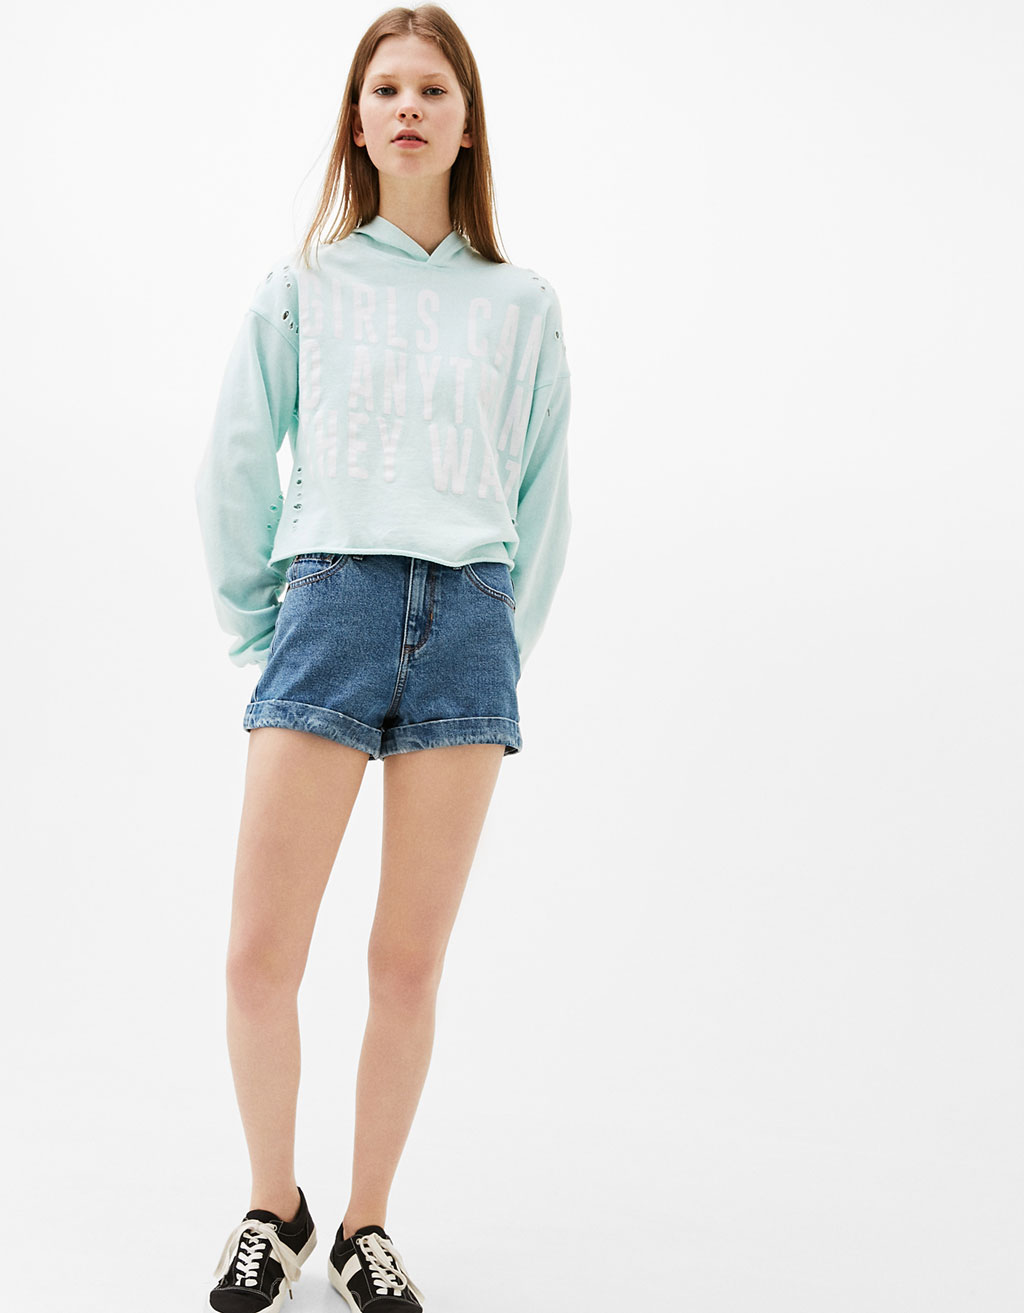 Rolled-up denim shorts